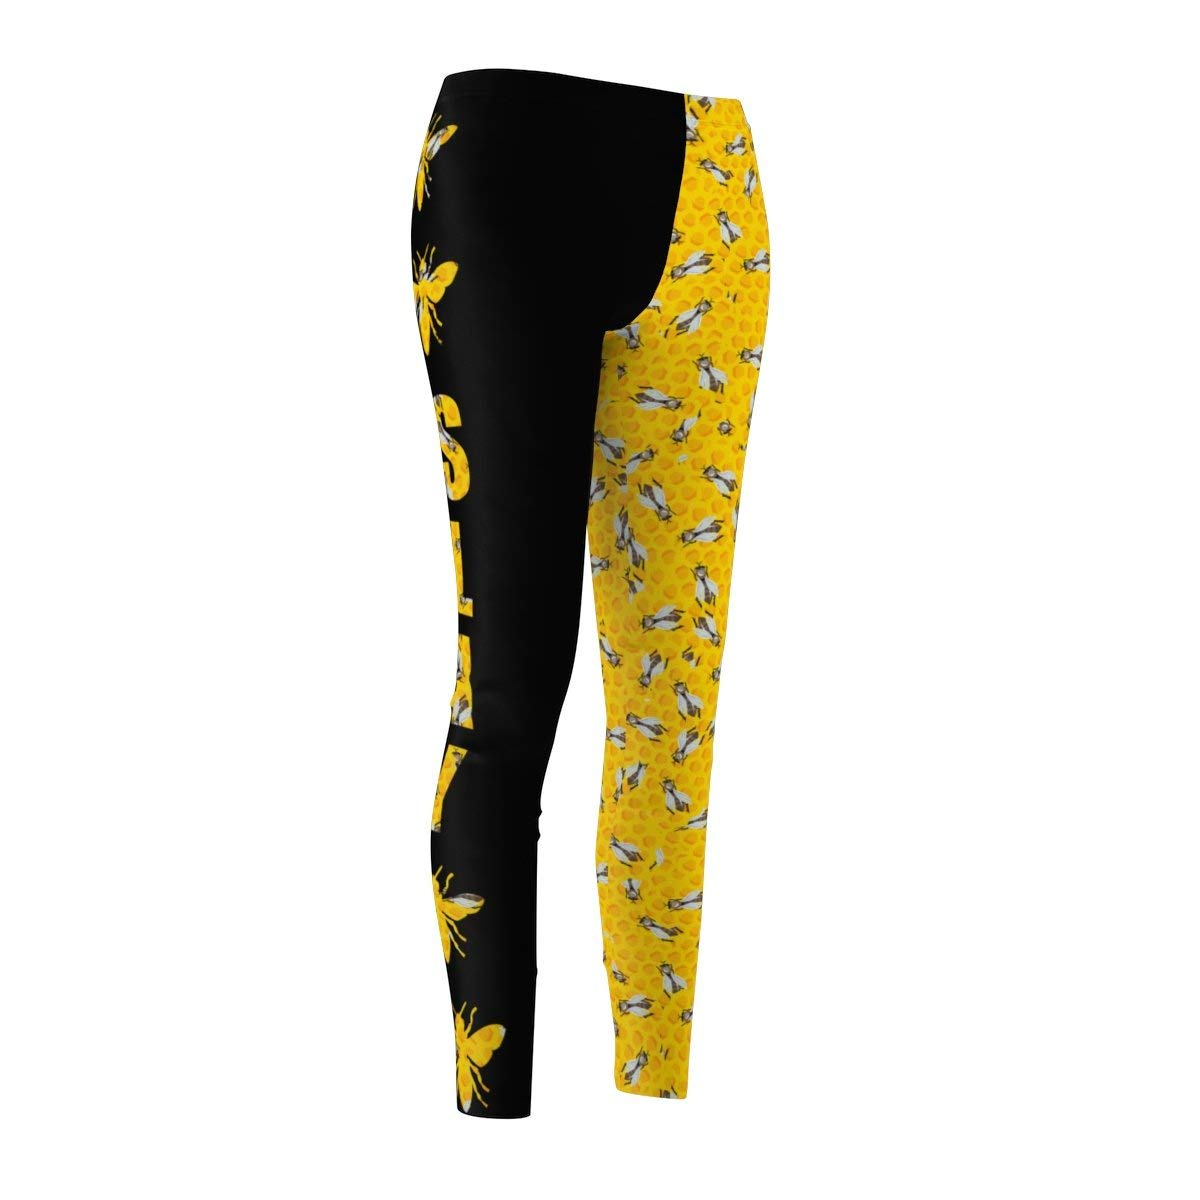 Fine Vintage Life Bey Hive Honey Comb Slay ONTRII Women's All Over Leggings - Two Tone Black by Fine Vintage Life (Image #3)